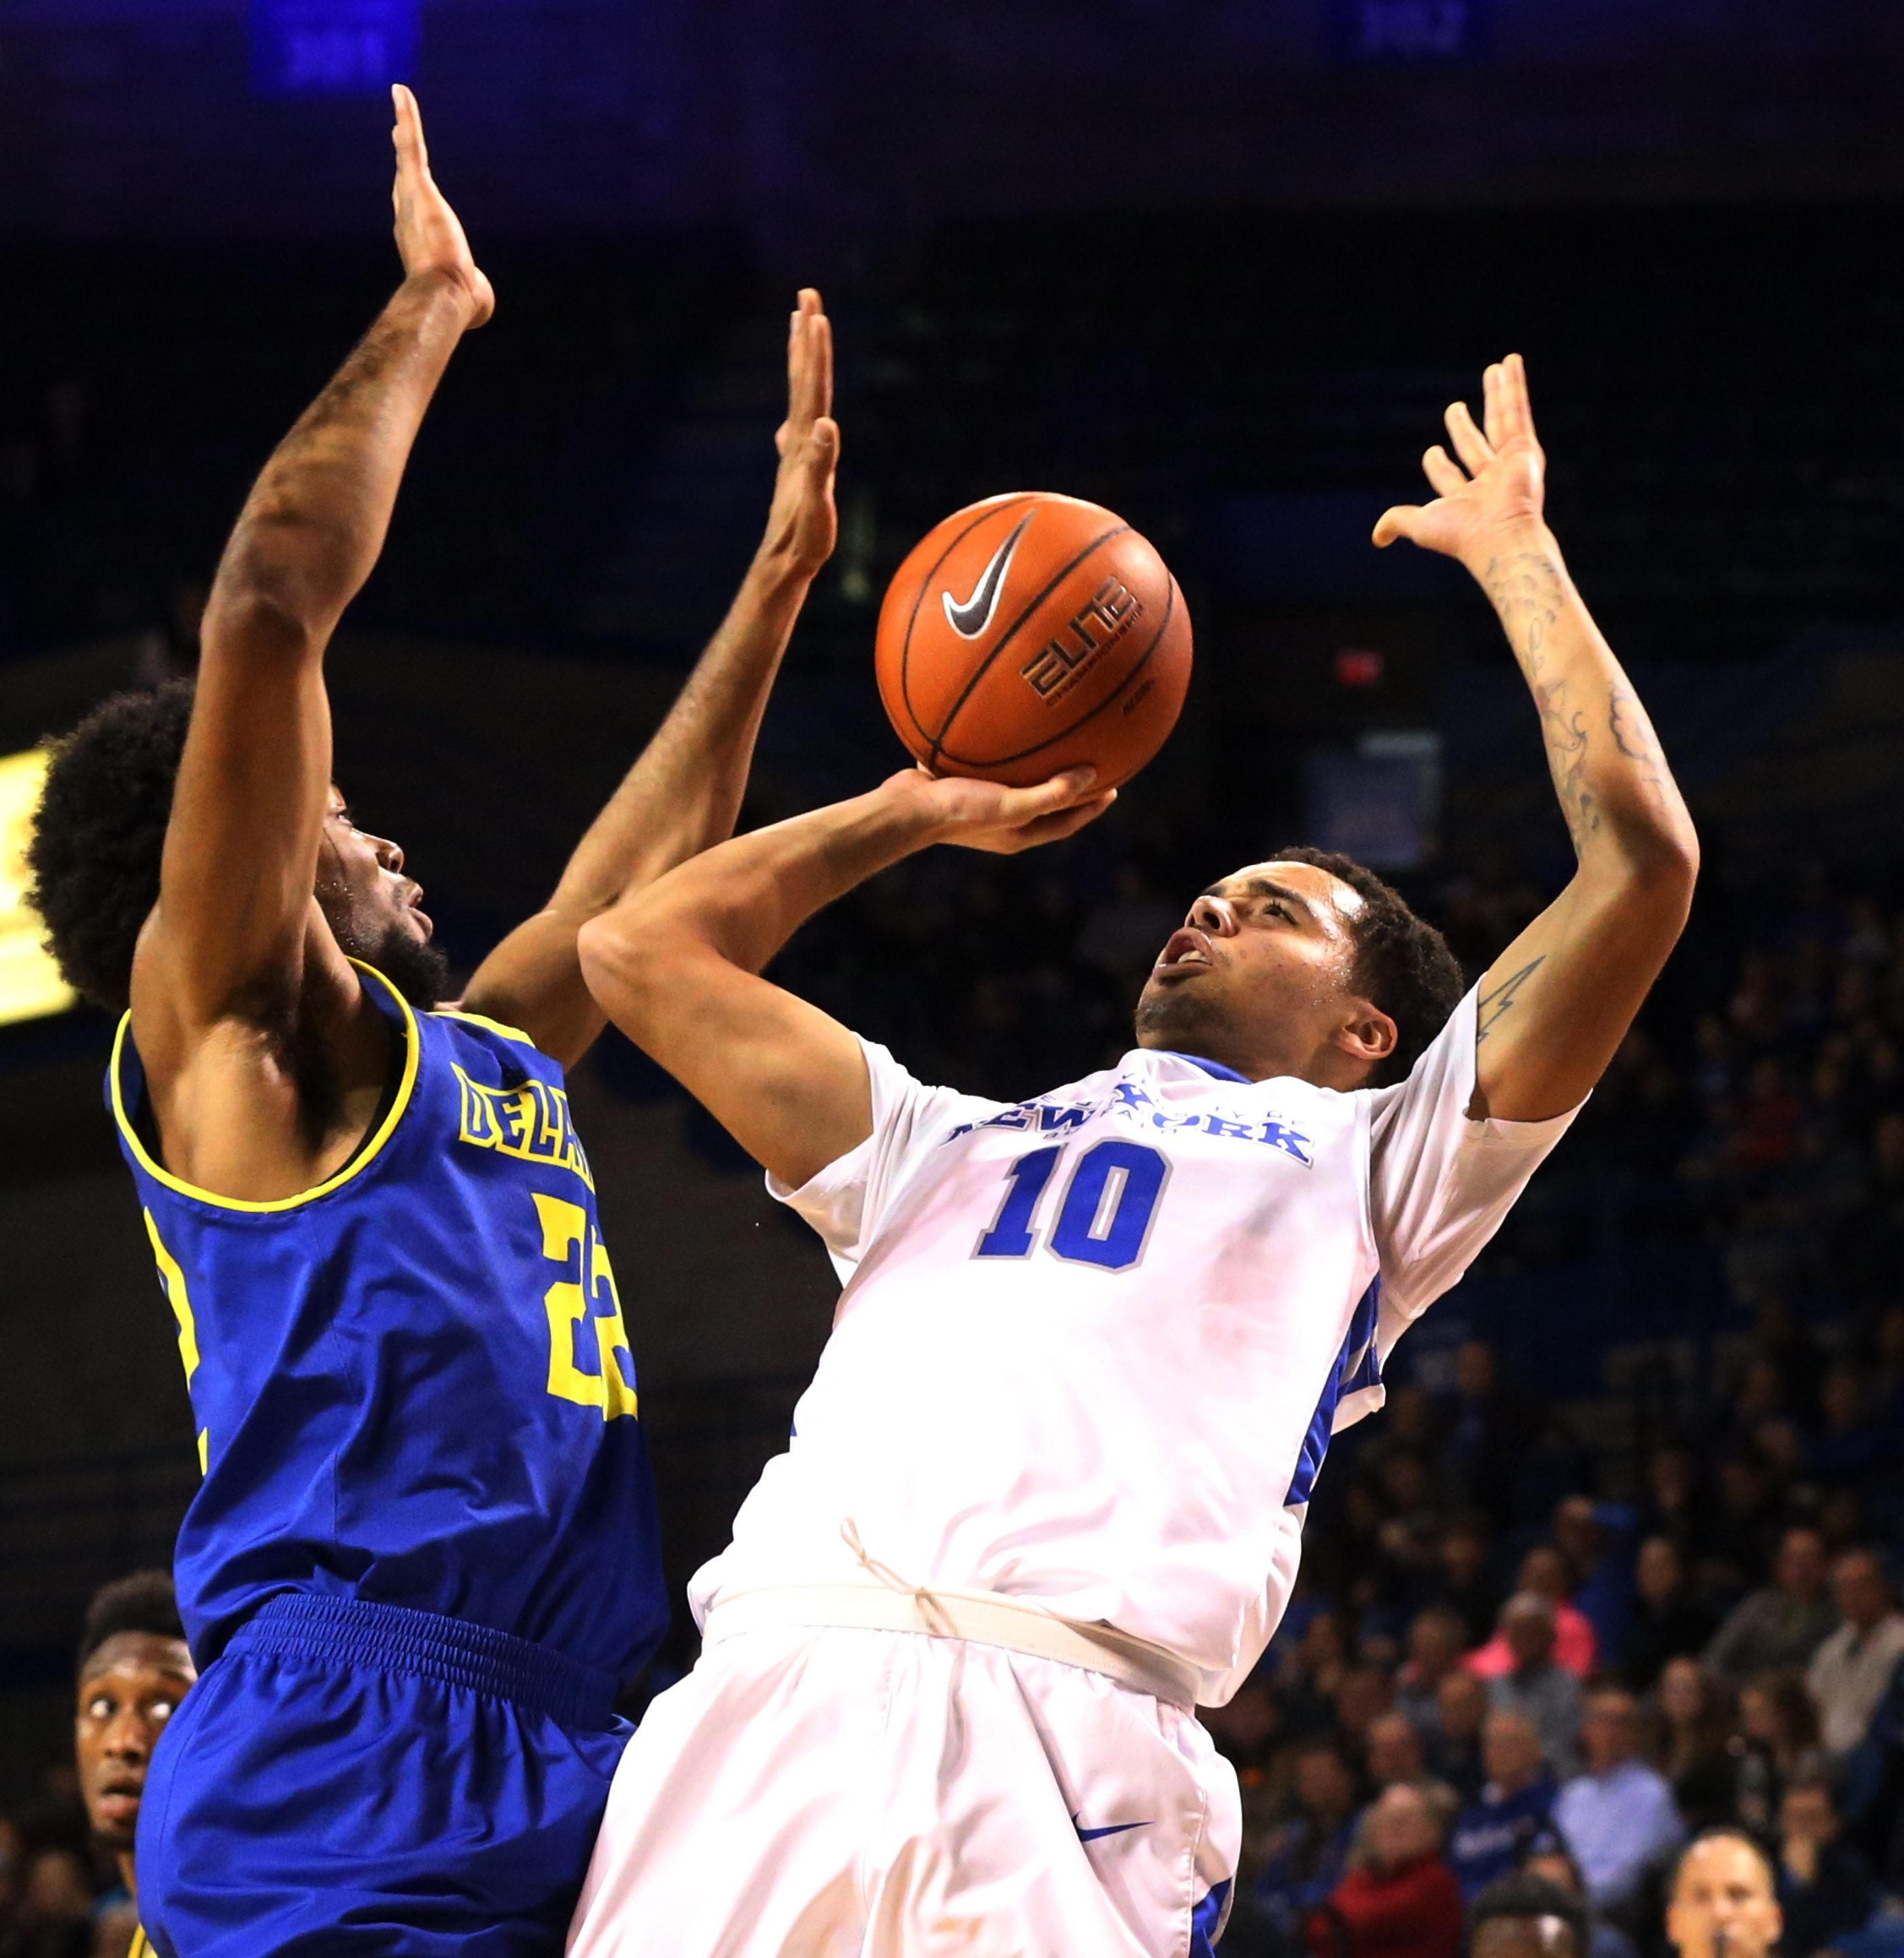 Jarryn Skeete of UB puts up two of his 20 points against Delaware's Cazmon Hayes.